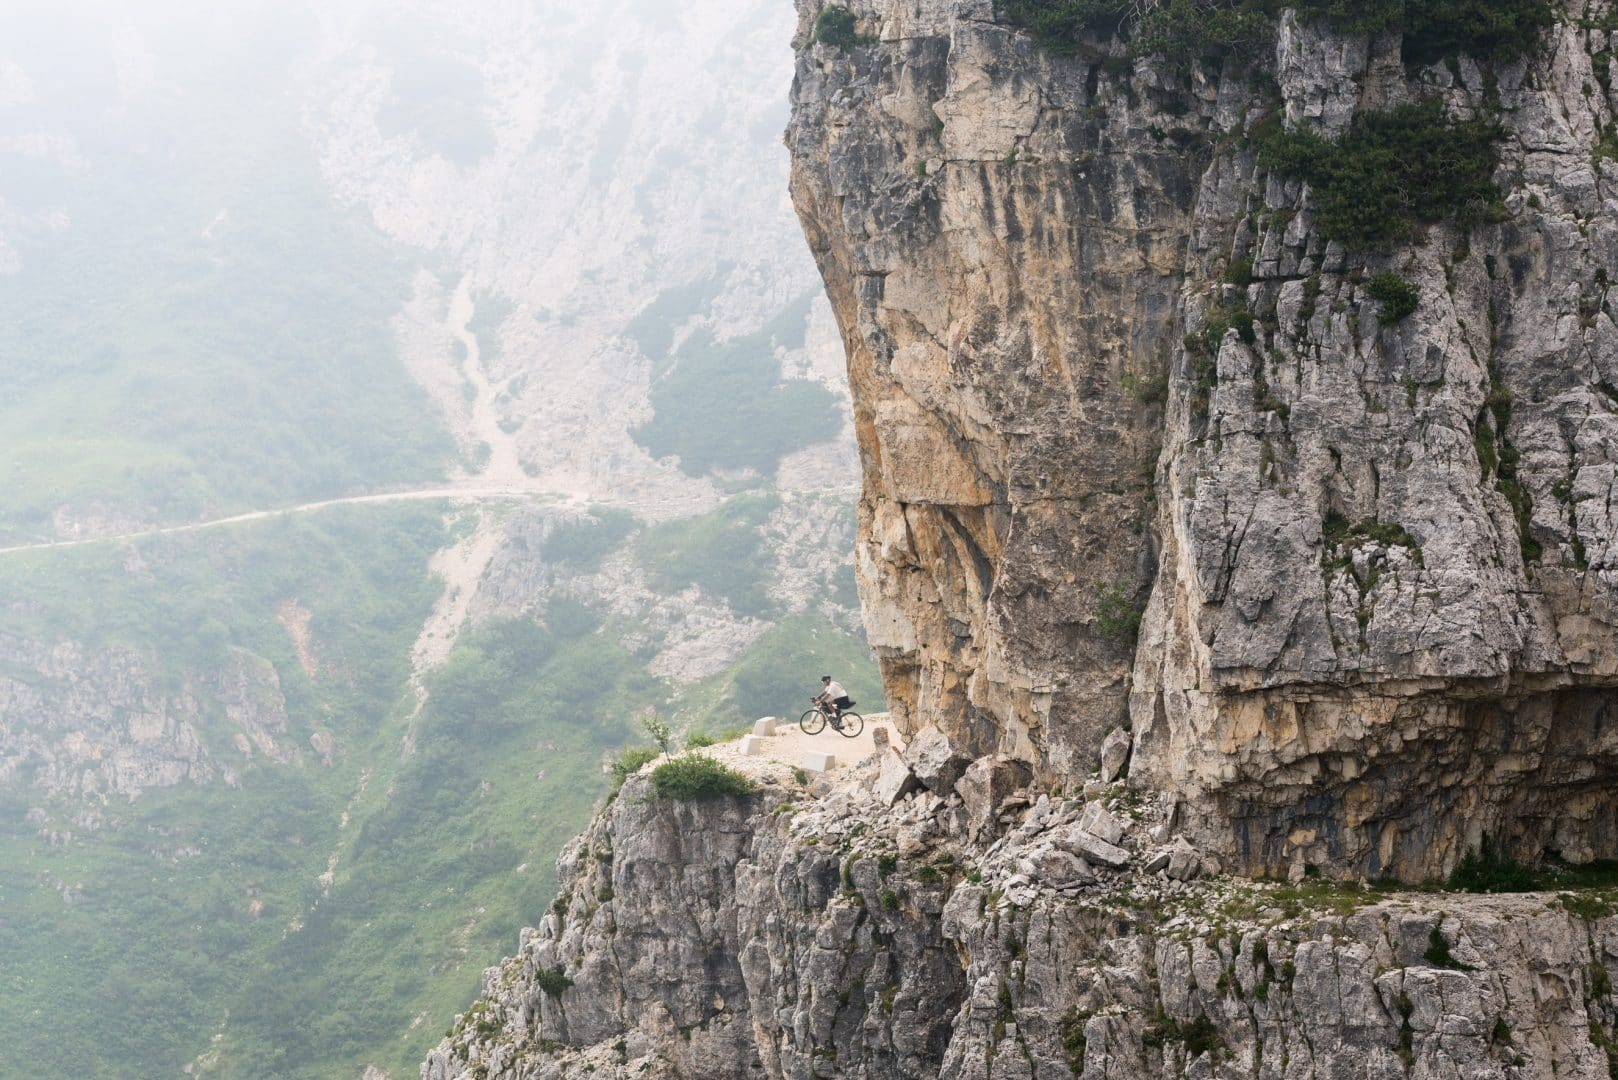 THE ROAD TO METEORA BY PEDALED